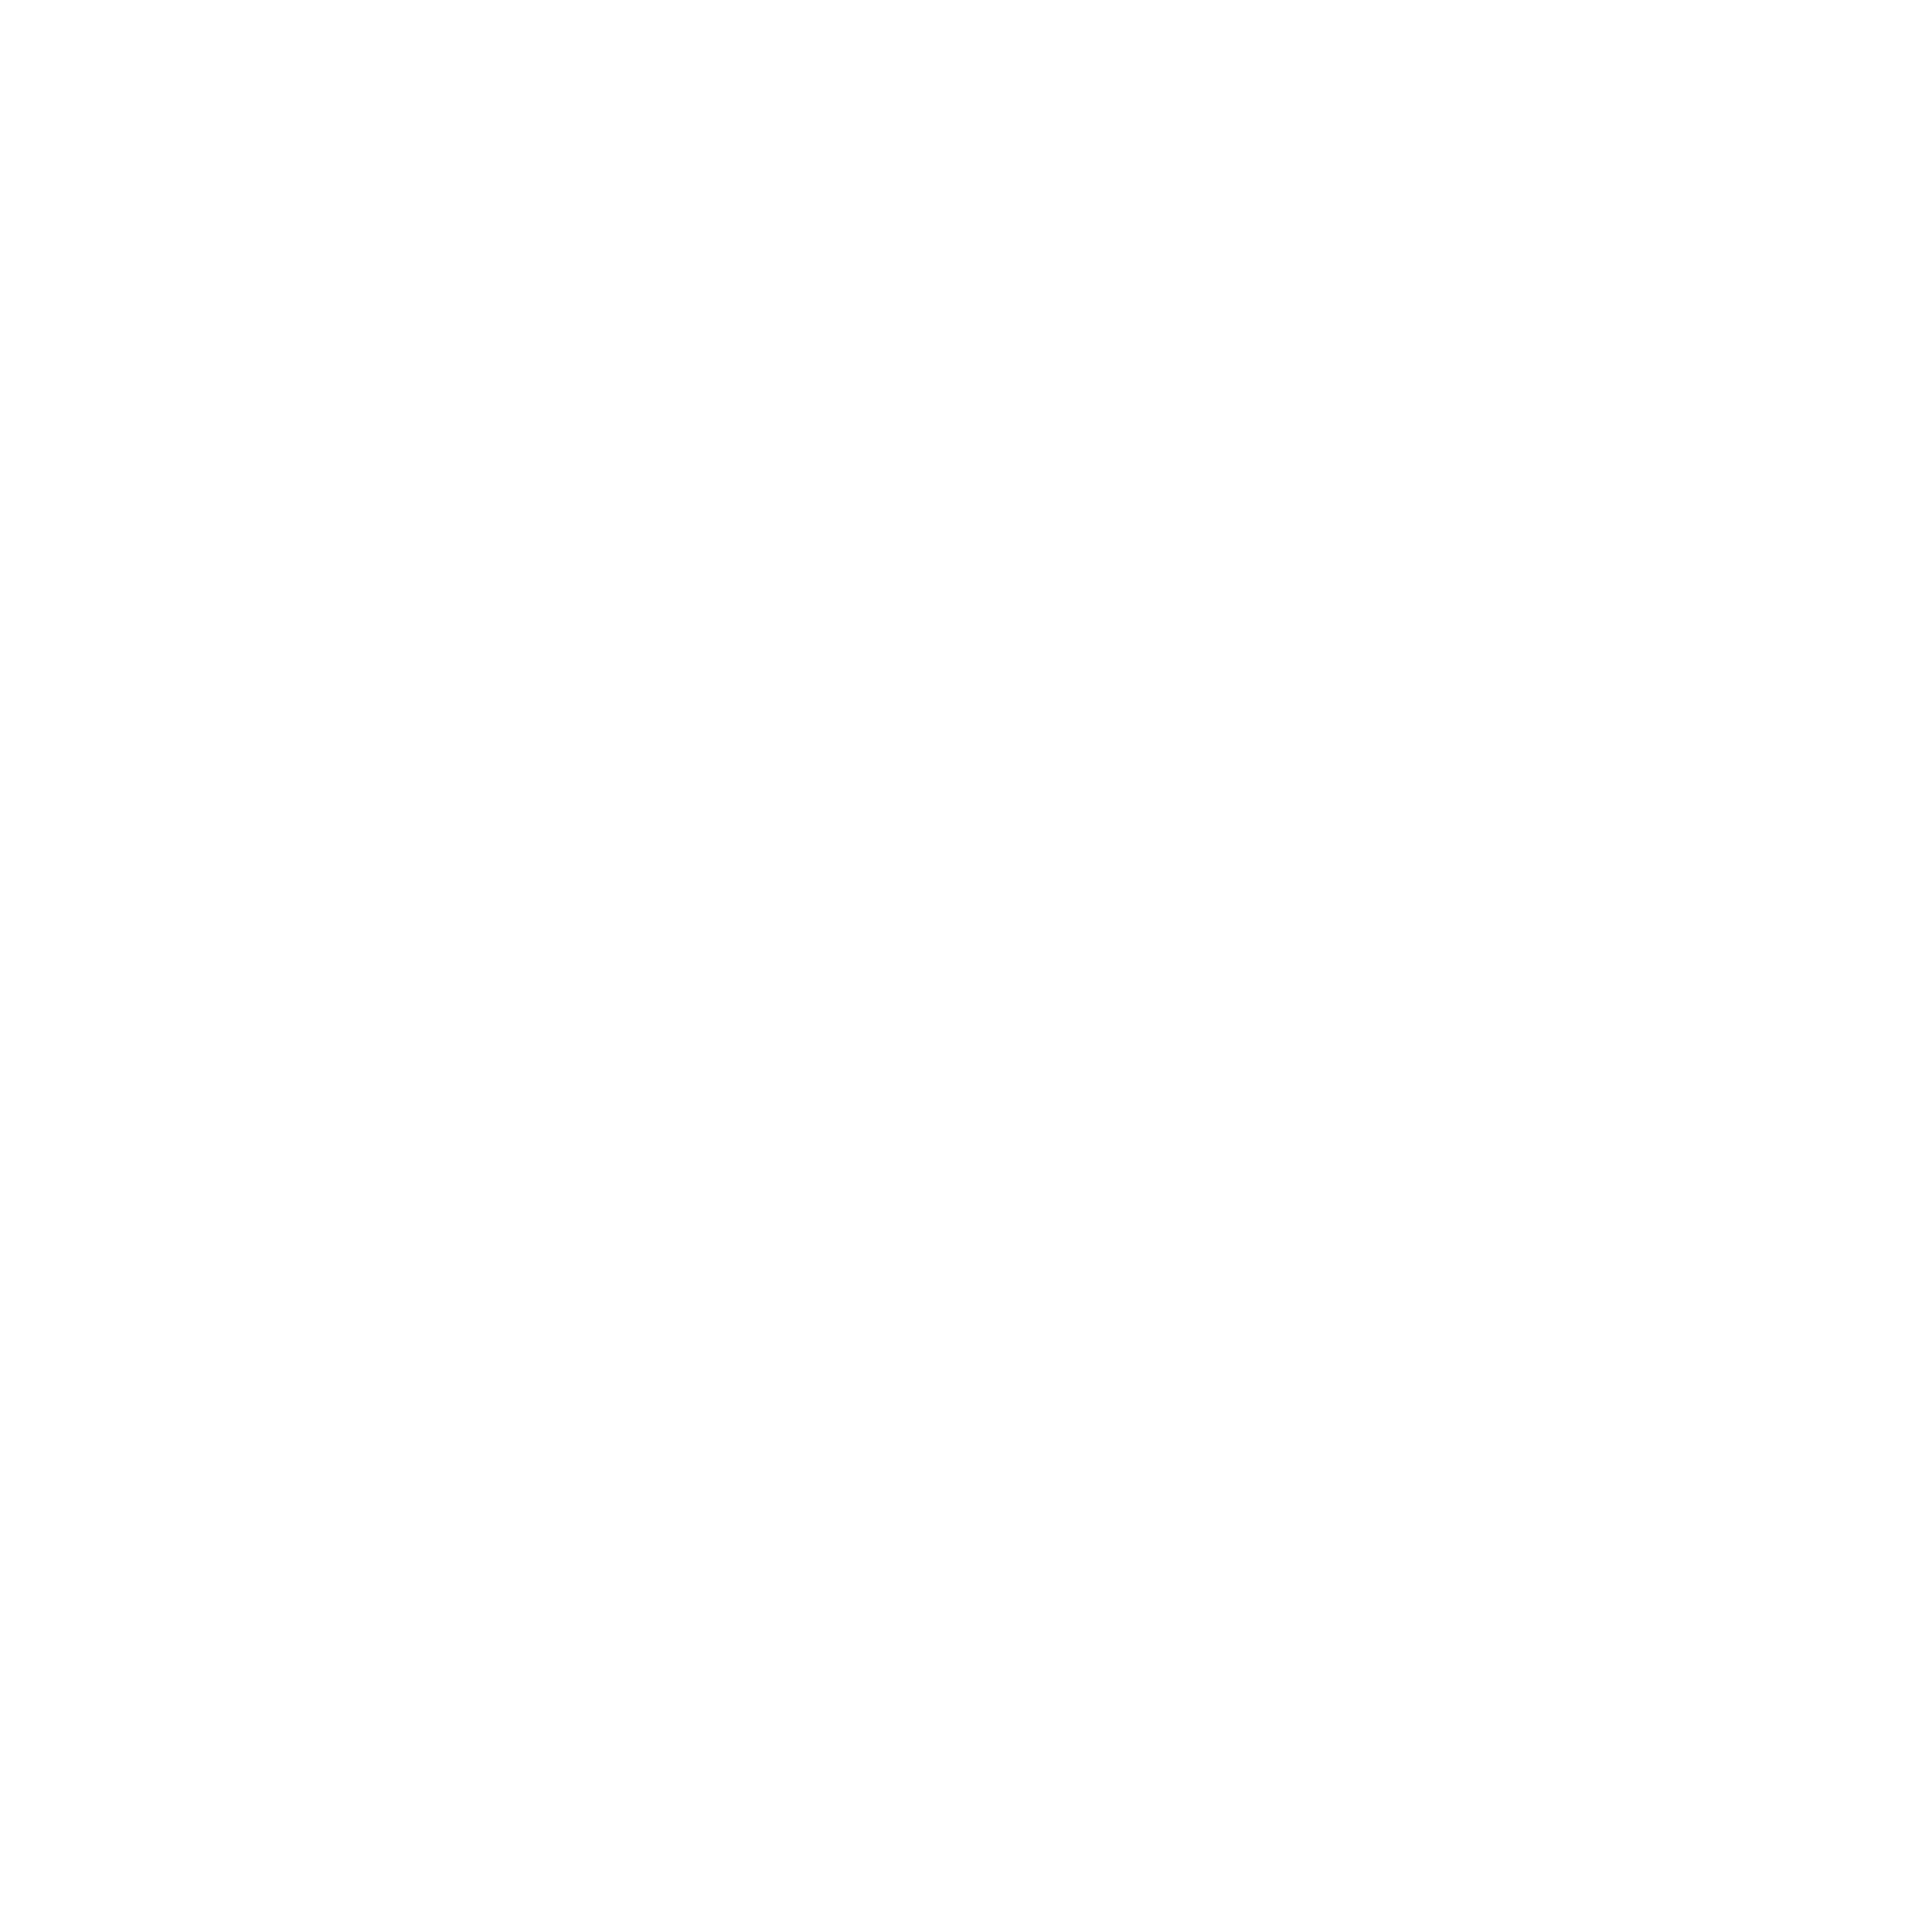 Smiley face white png. File smile lirion wikimedia